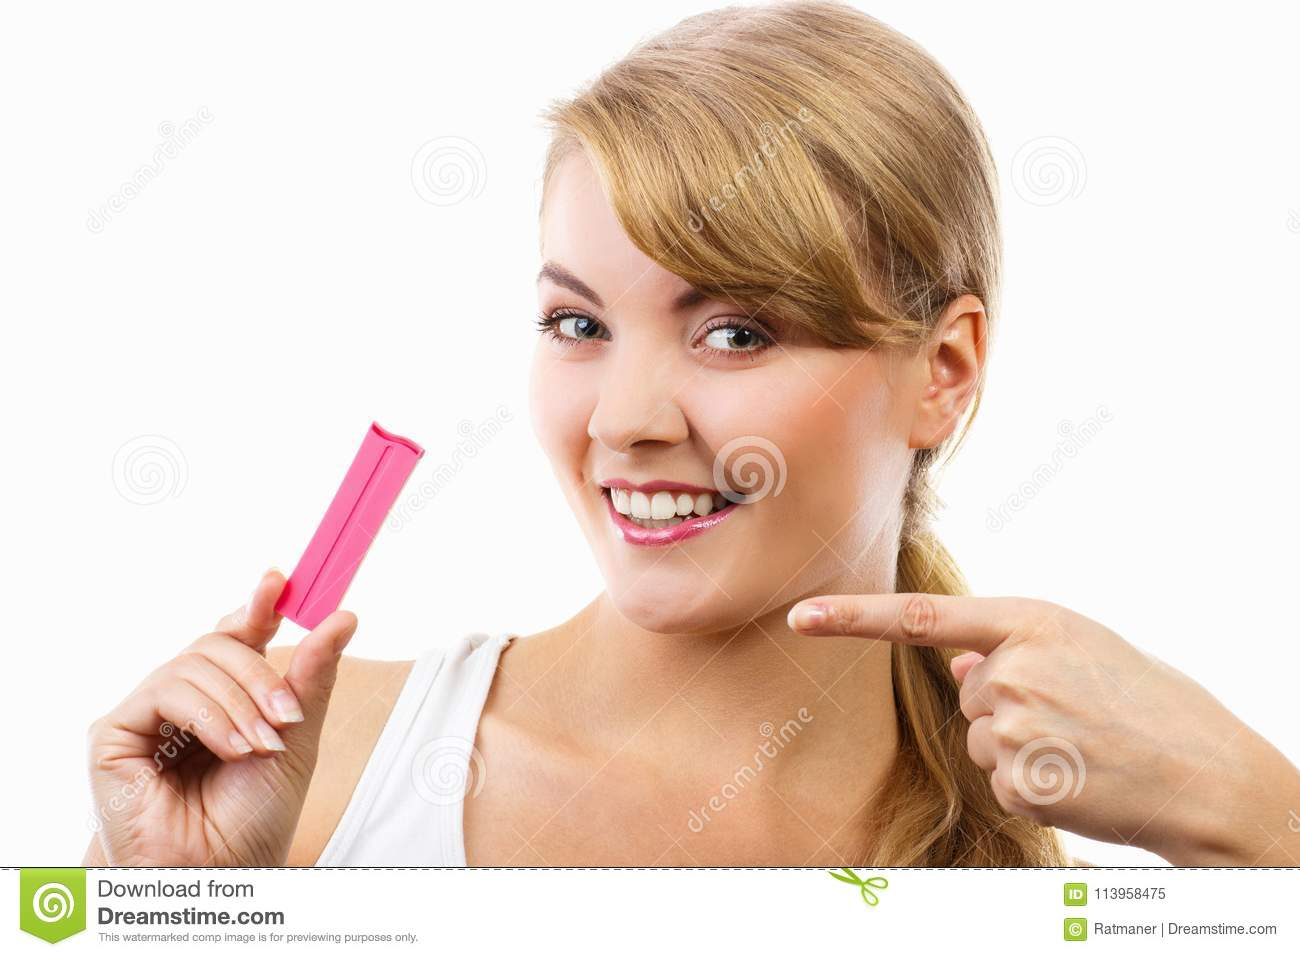 Happy smiling woman holding pregnancy test with positive result